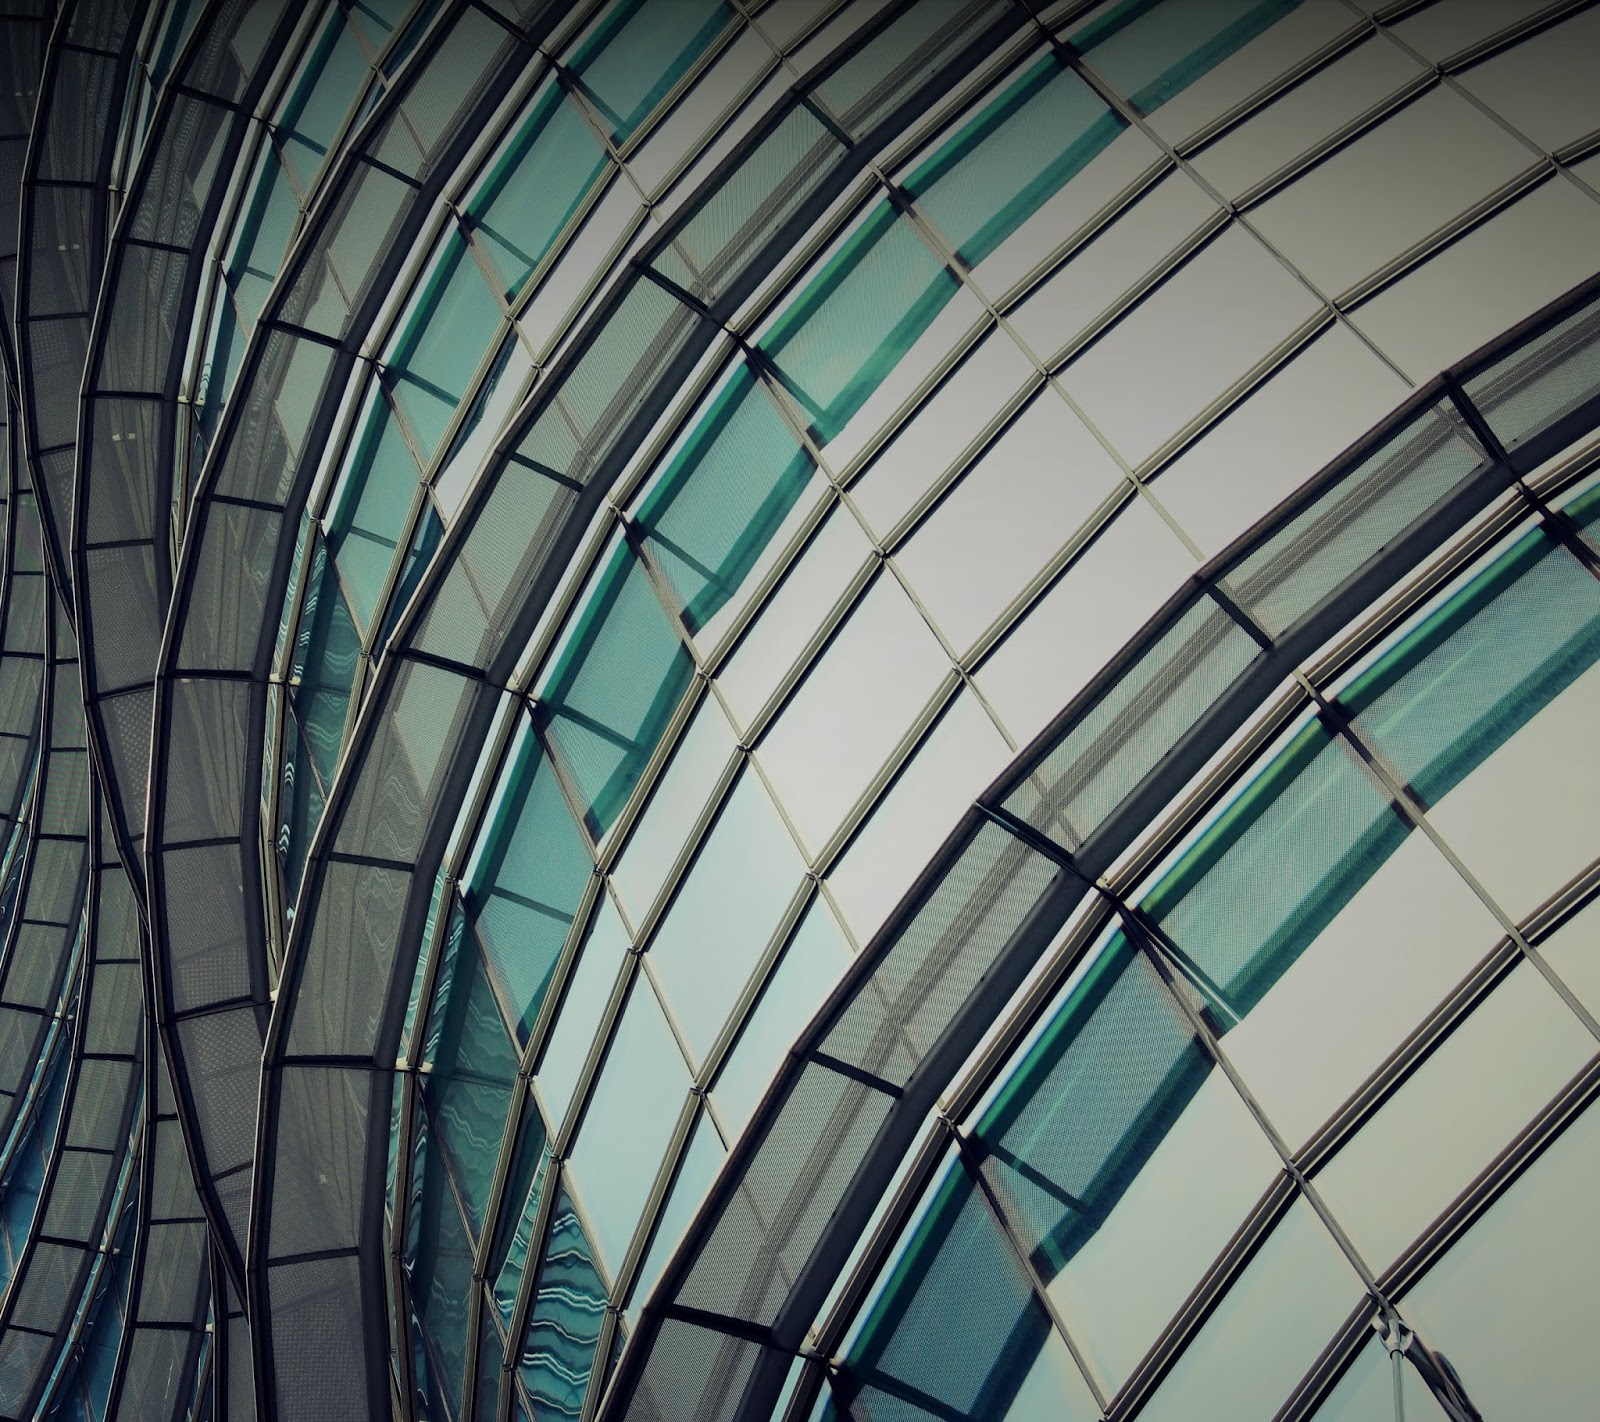 Architecture, Glass buildings, Stock, HD, World